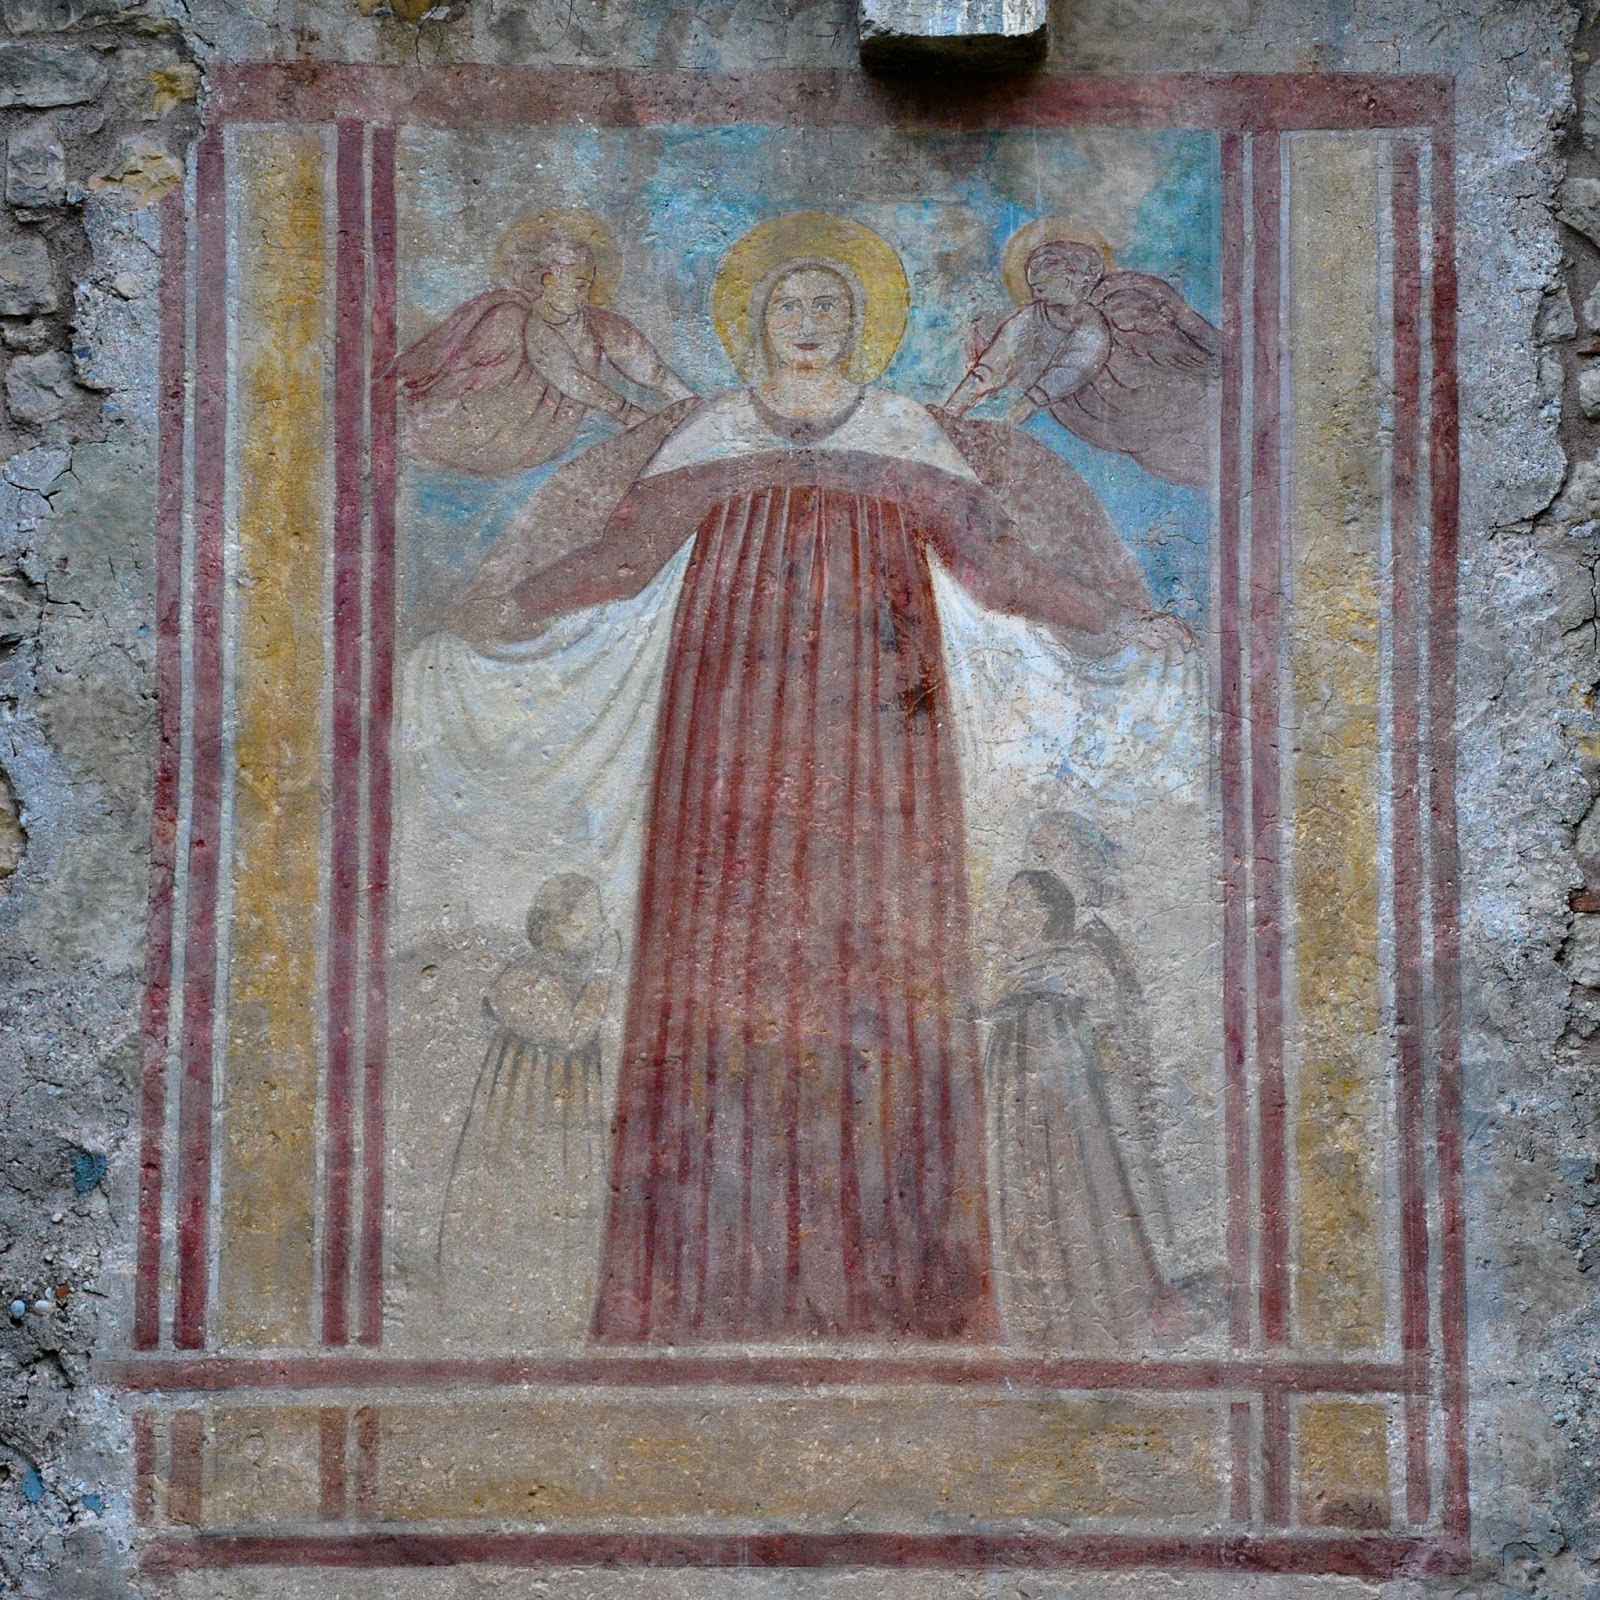 Mural preserved on the wall of Soave Castle, Soave, Veneto, Italy